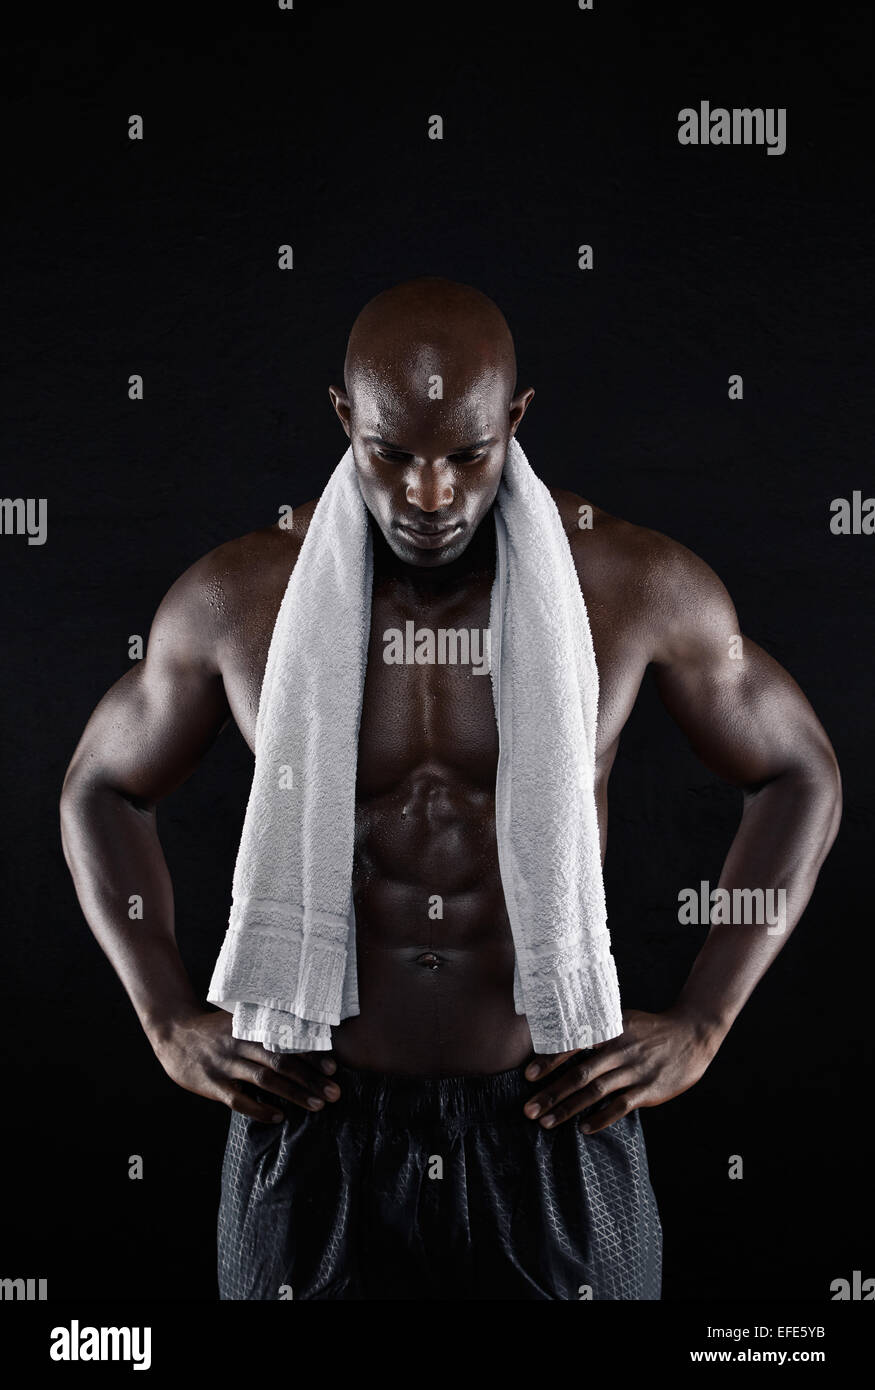 Shirtless muscular man with a towel looking down with his hands on hips on black background. Fit young african man - Stock Image